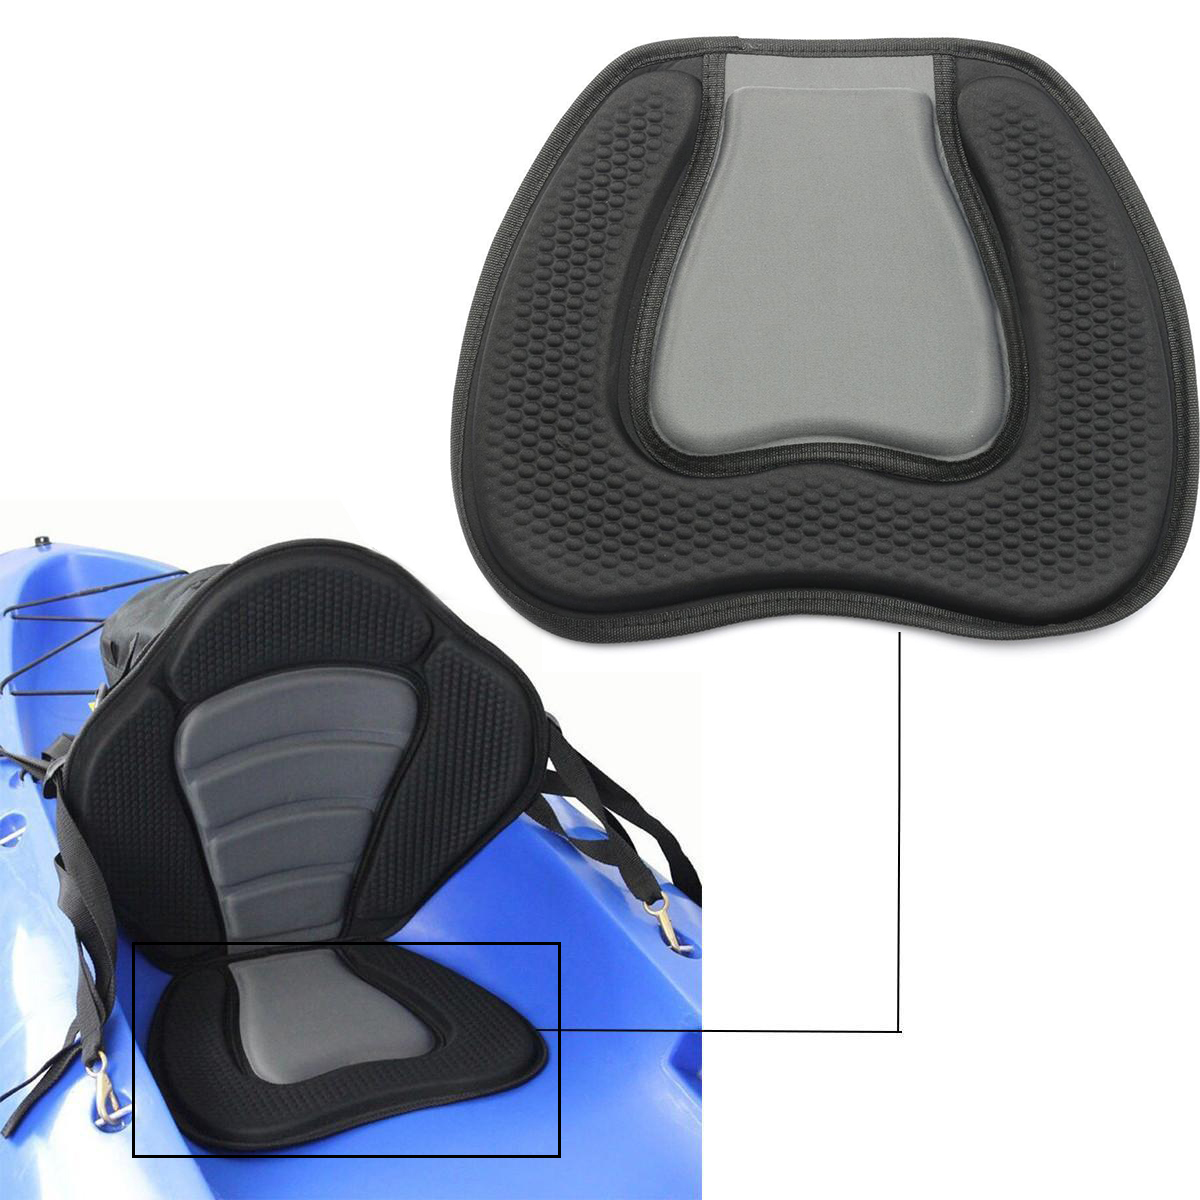 Mayitr 38x32cm Kayak Soft Seat Cushion Pad Canoe Fishing Boat Comfortable EVA Cushion Seat Padded Black For Boat